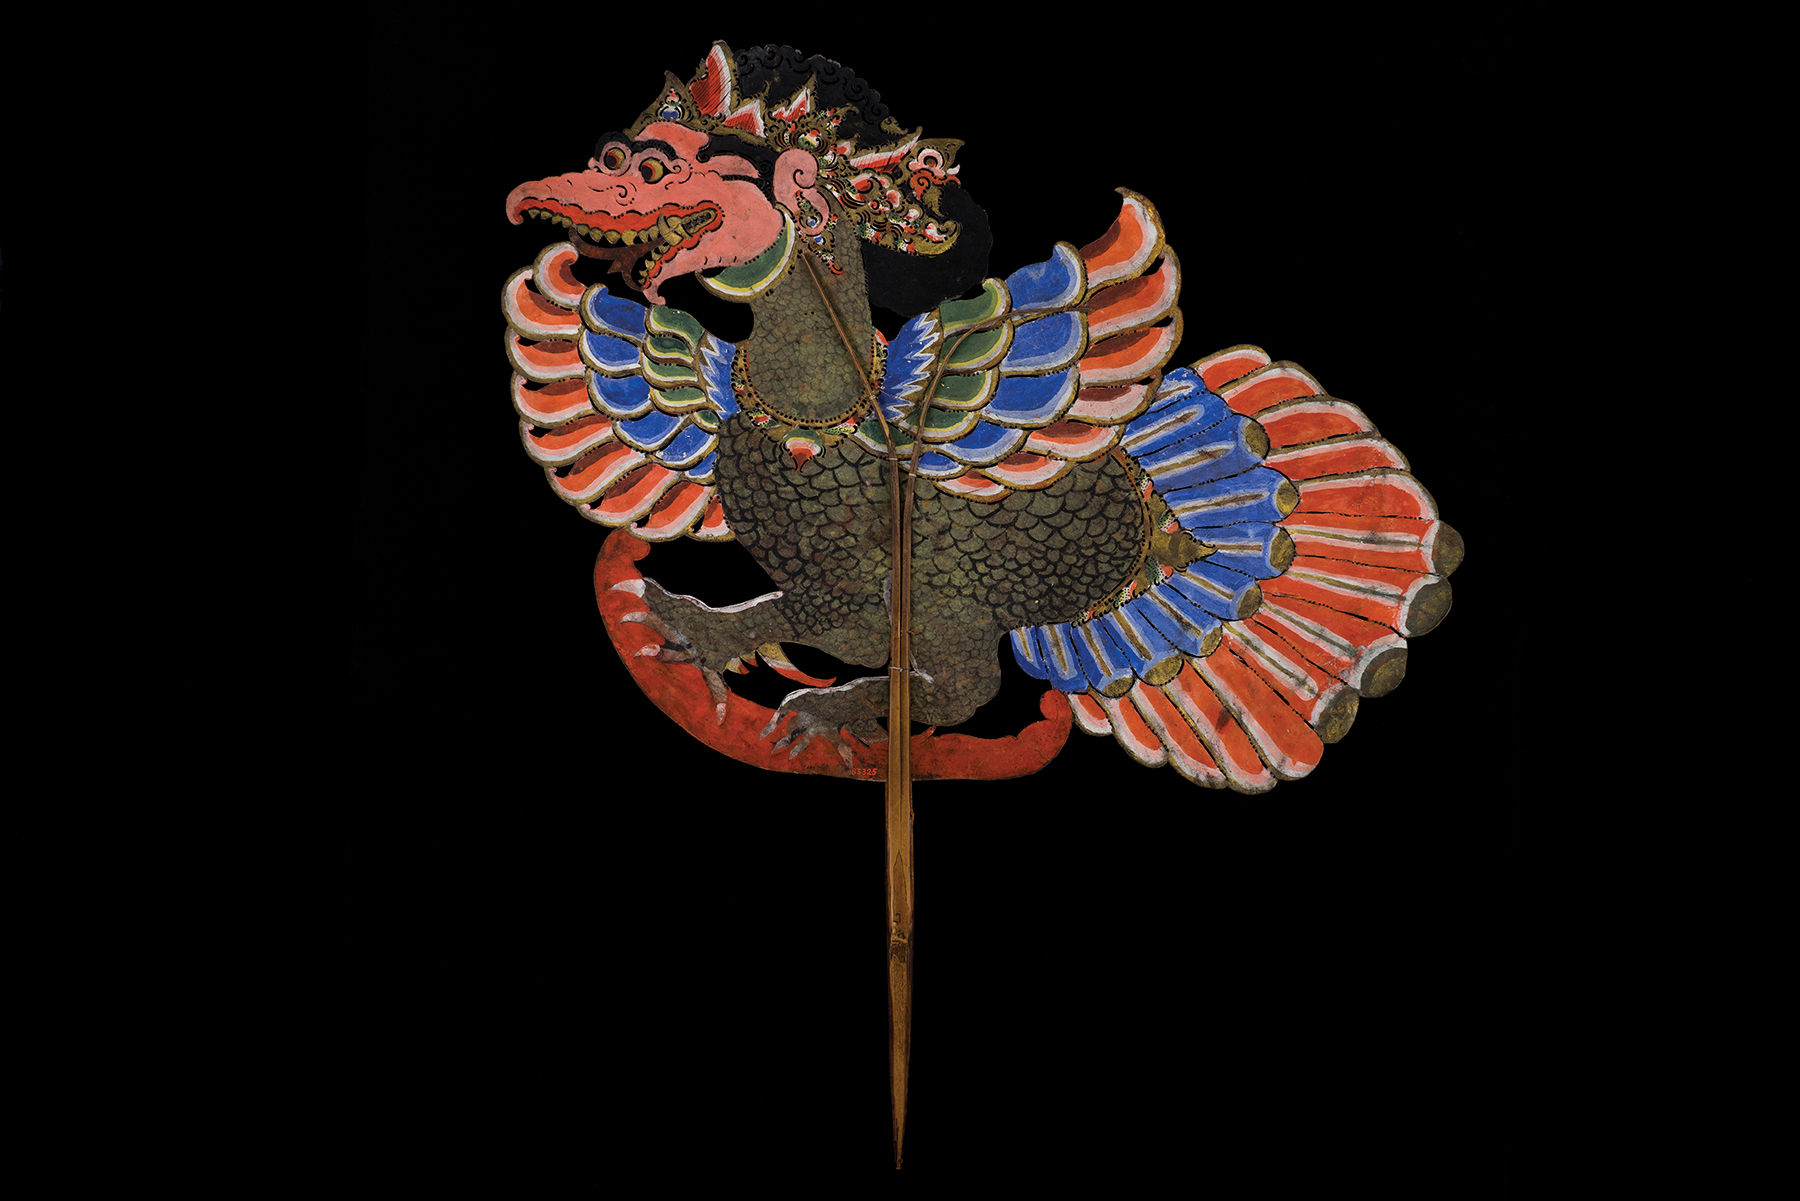 Shadow puppet Garuda figure, Java. PM 11-49-70/83325. Peabody Museum of Archaeology & Ethnology. Copyright President and Fellows of Harvard College.